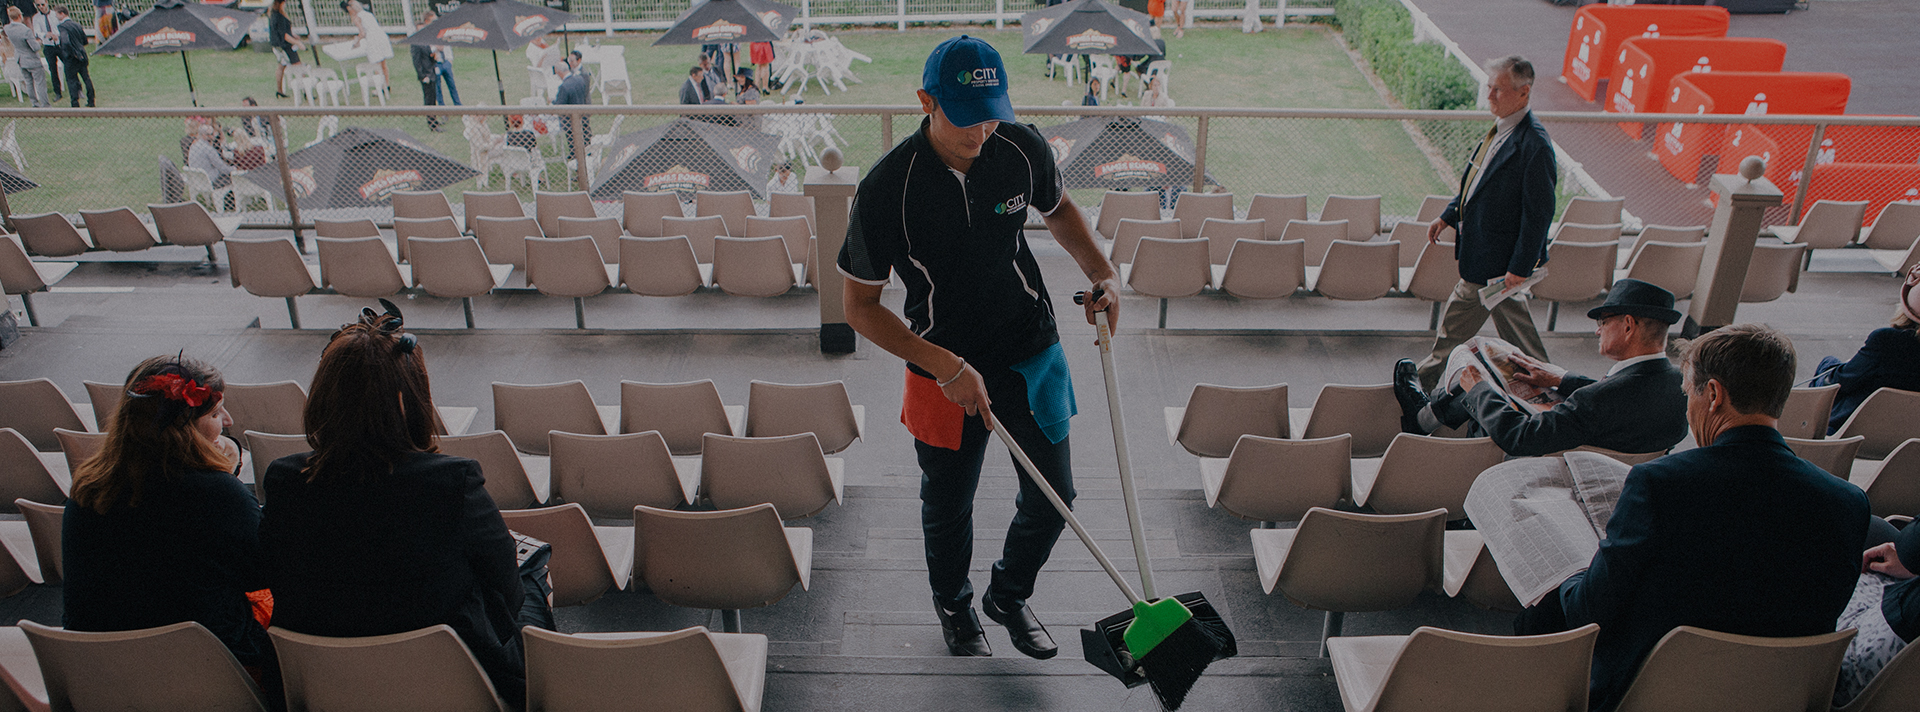 Major event cleaning services